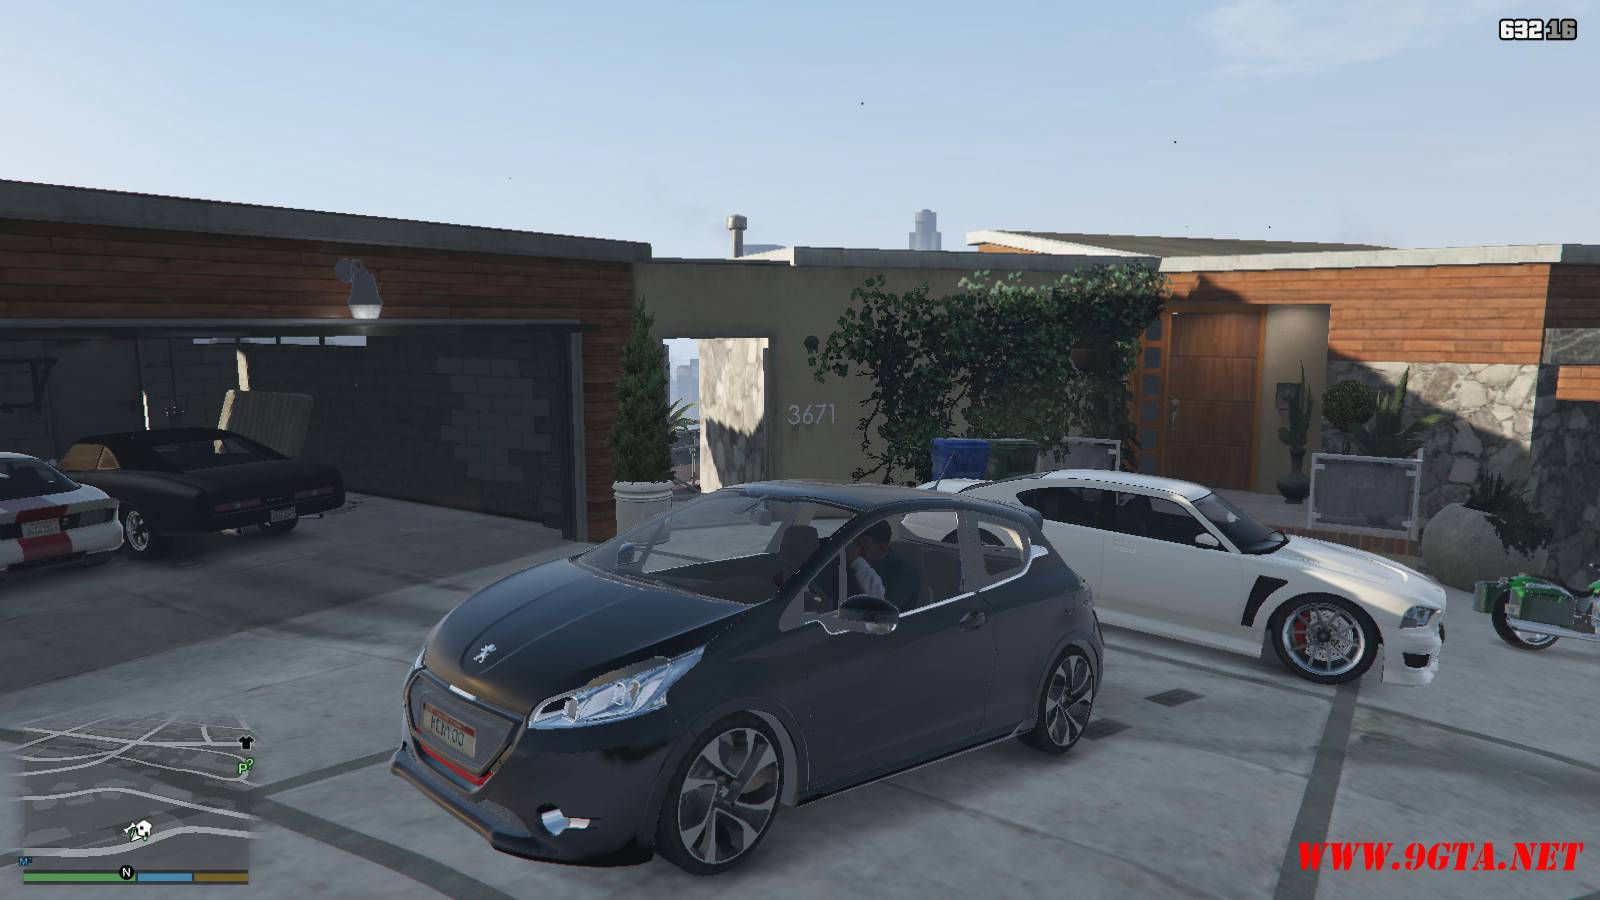 Peugeot 208 Mod For GTA5 (1)